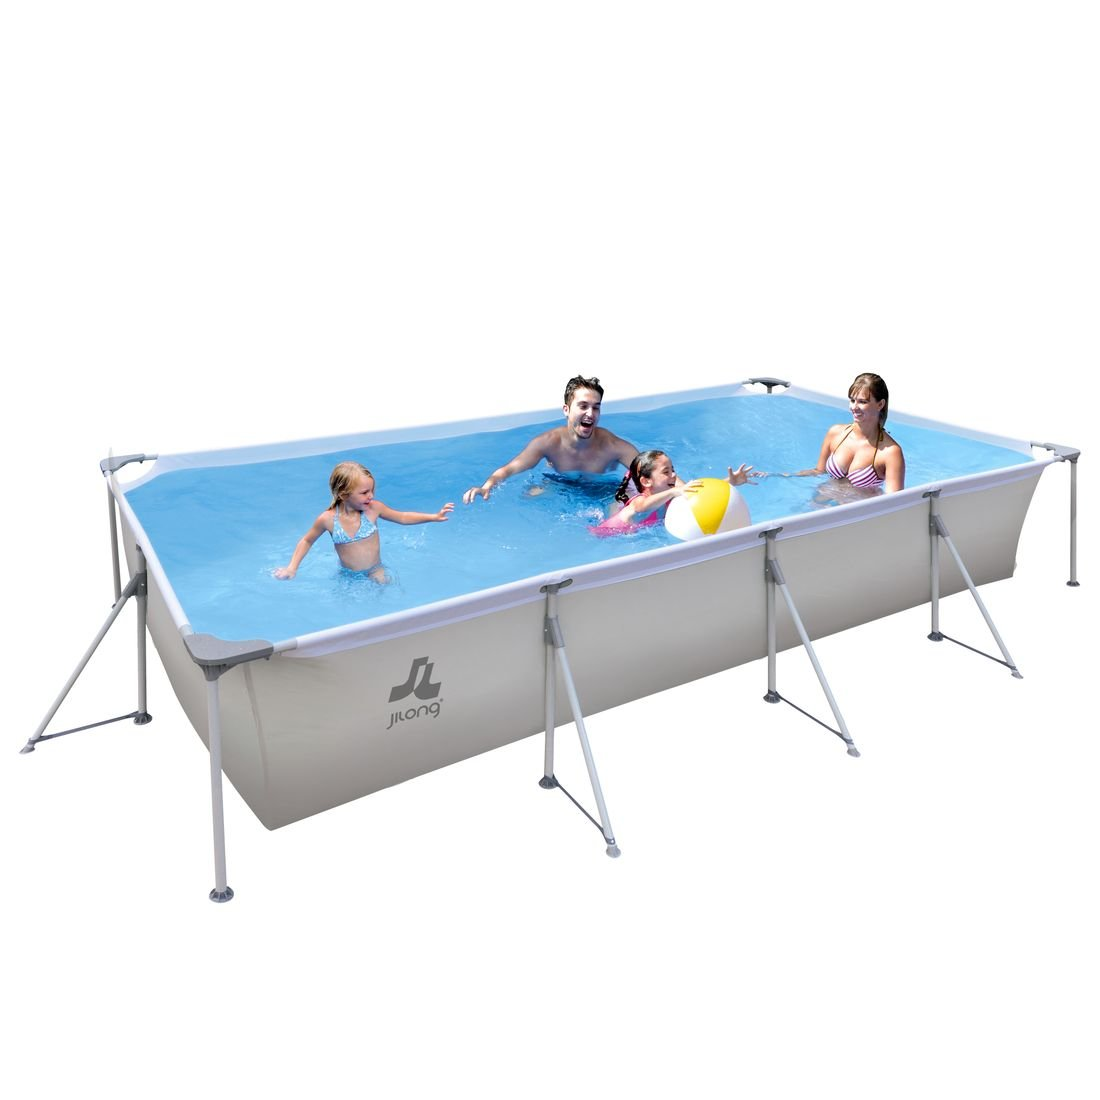 Jilong Swimming Pool Passaat Grey - Steel frame pool 300x207x70 cm, family baths for garden and terrace.